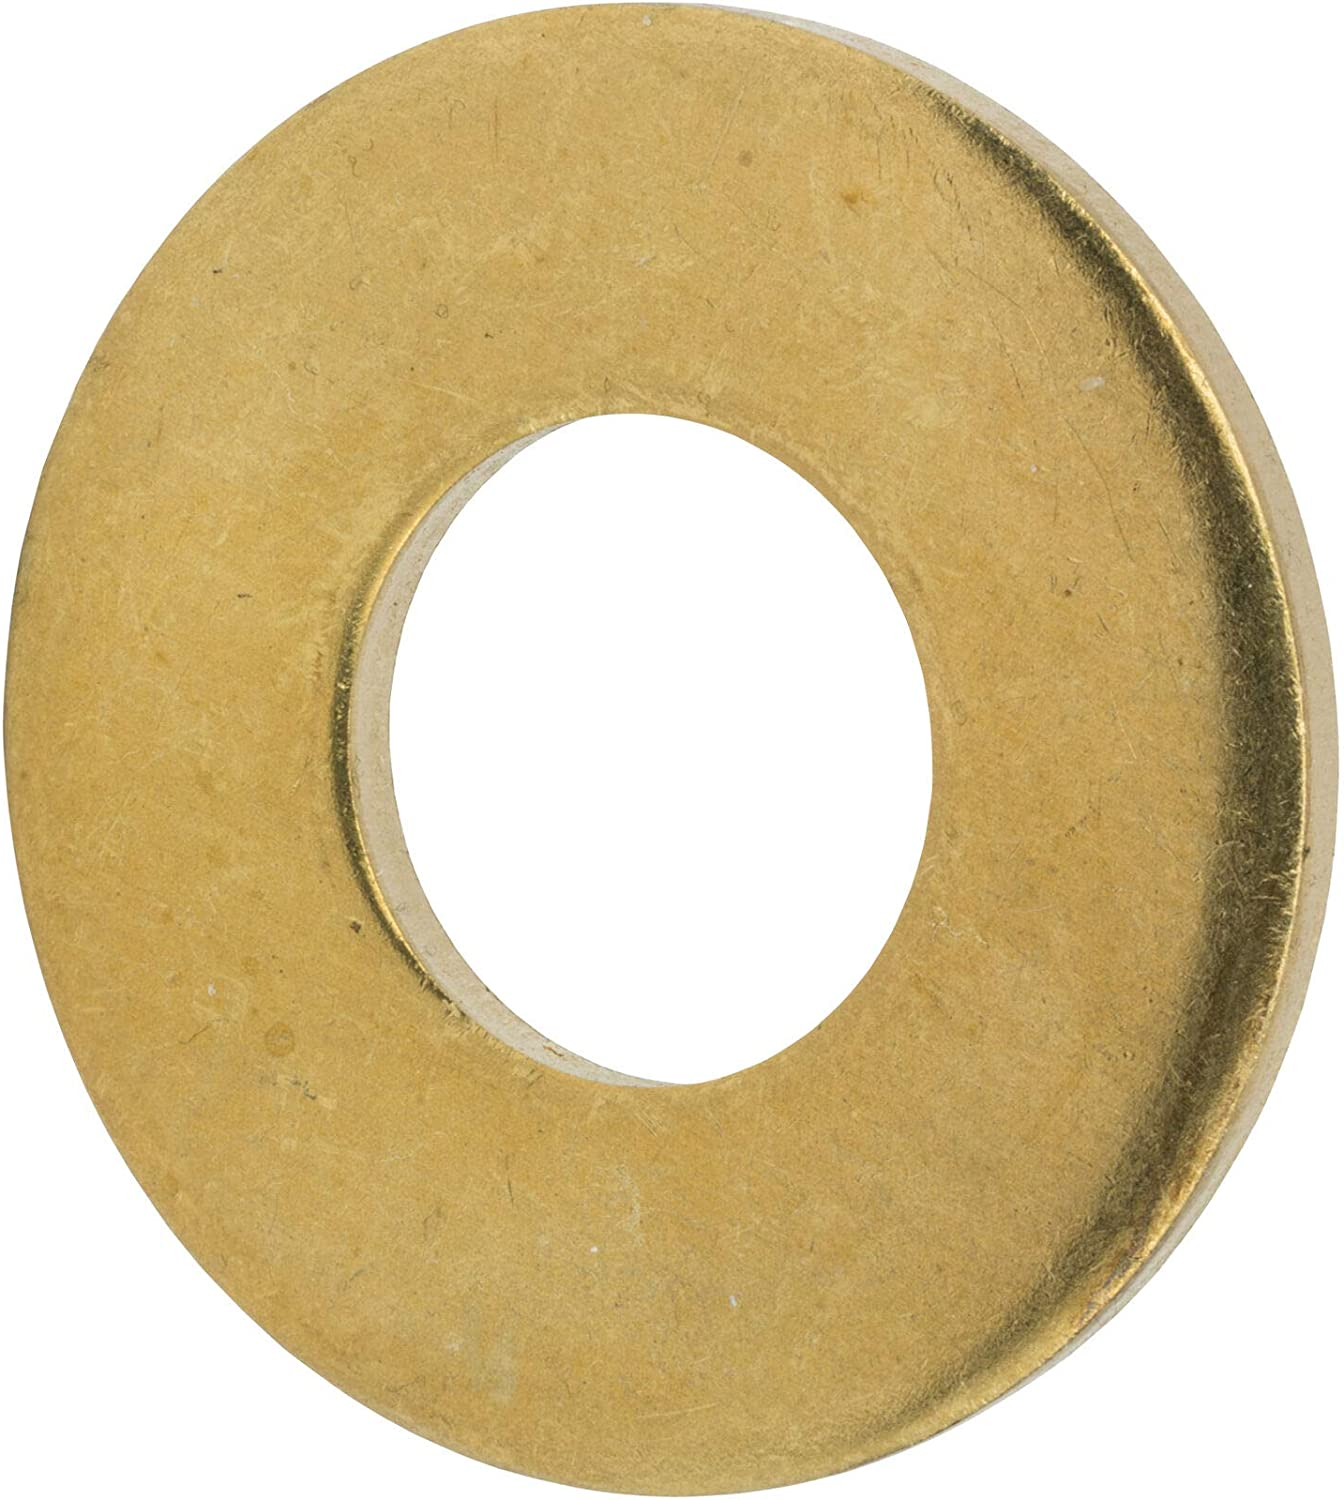 3//4 Flat Solid Brass Flat Washers Commercial Standard Grade 360 Qty 50